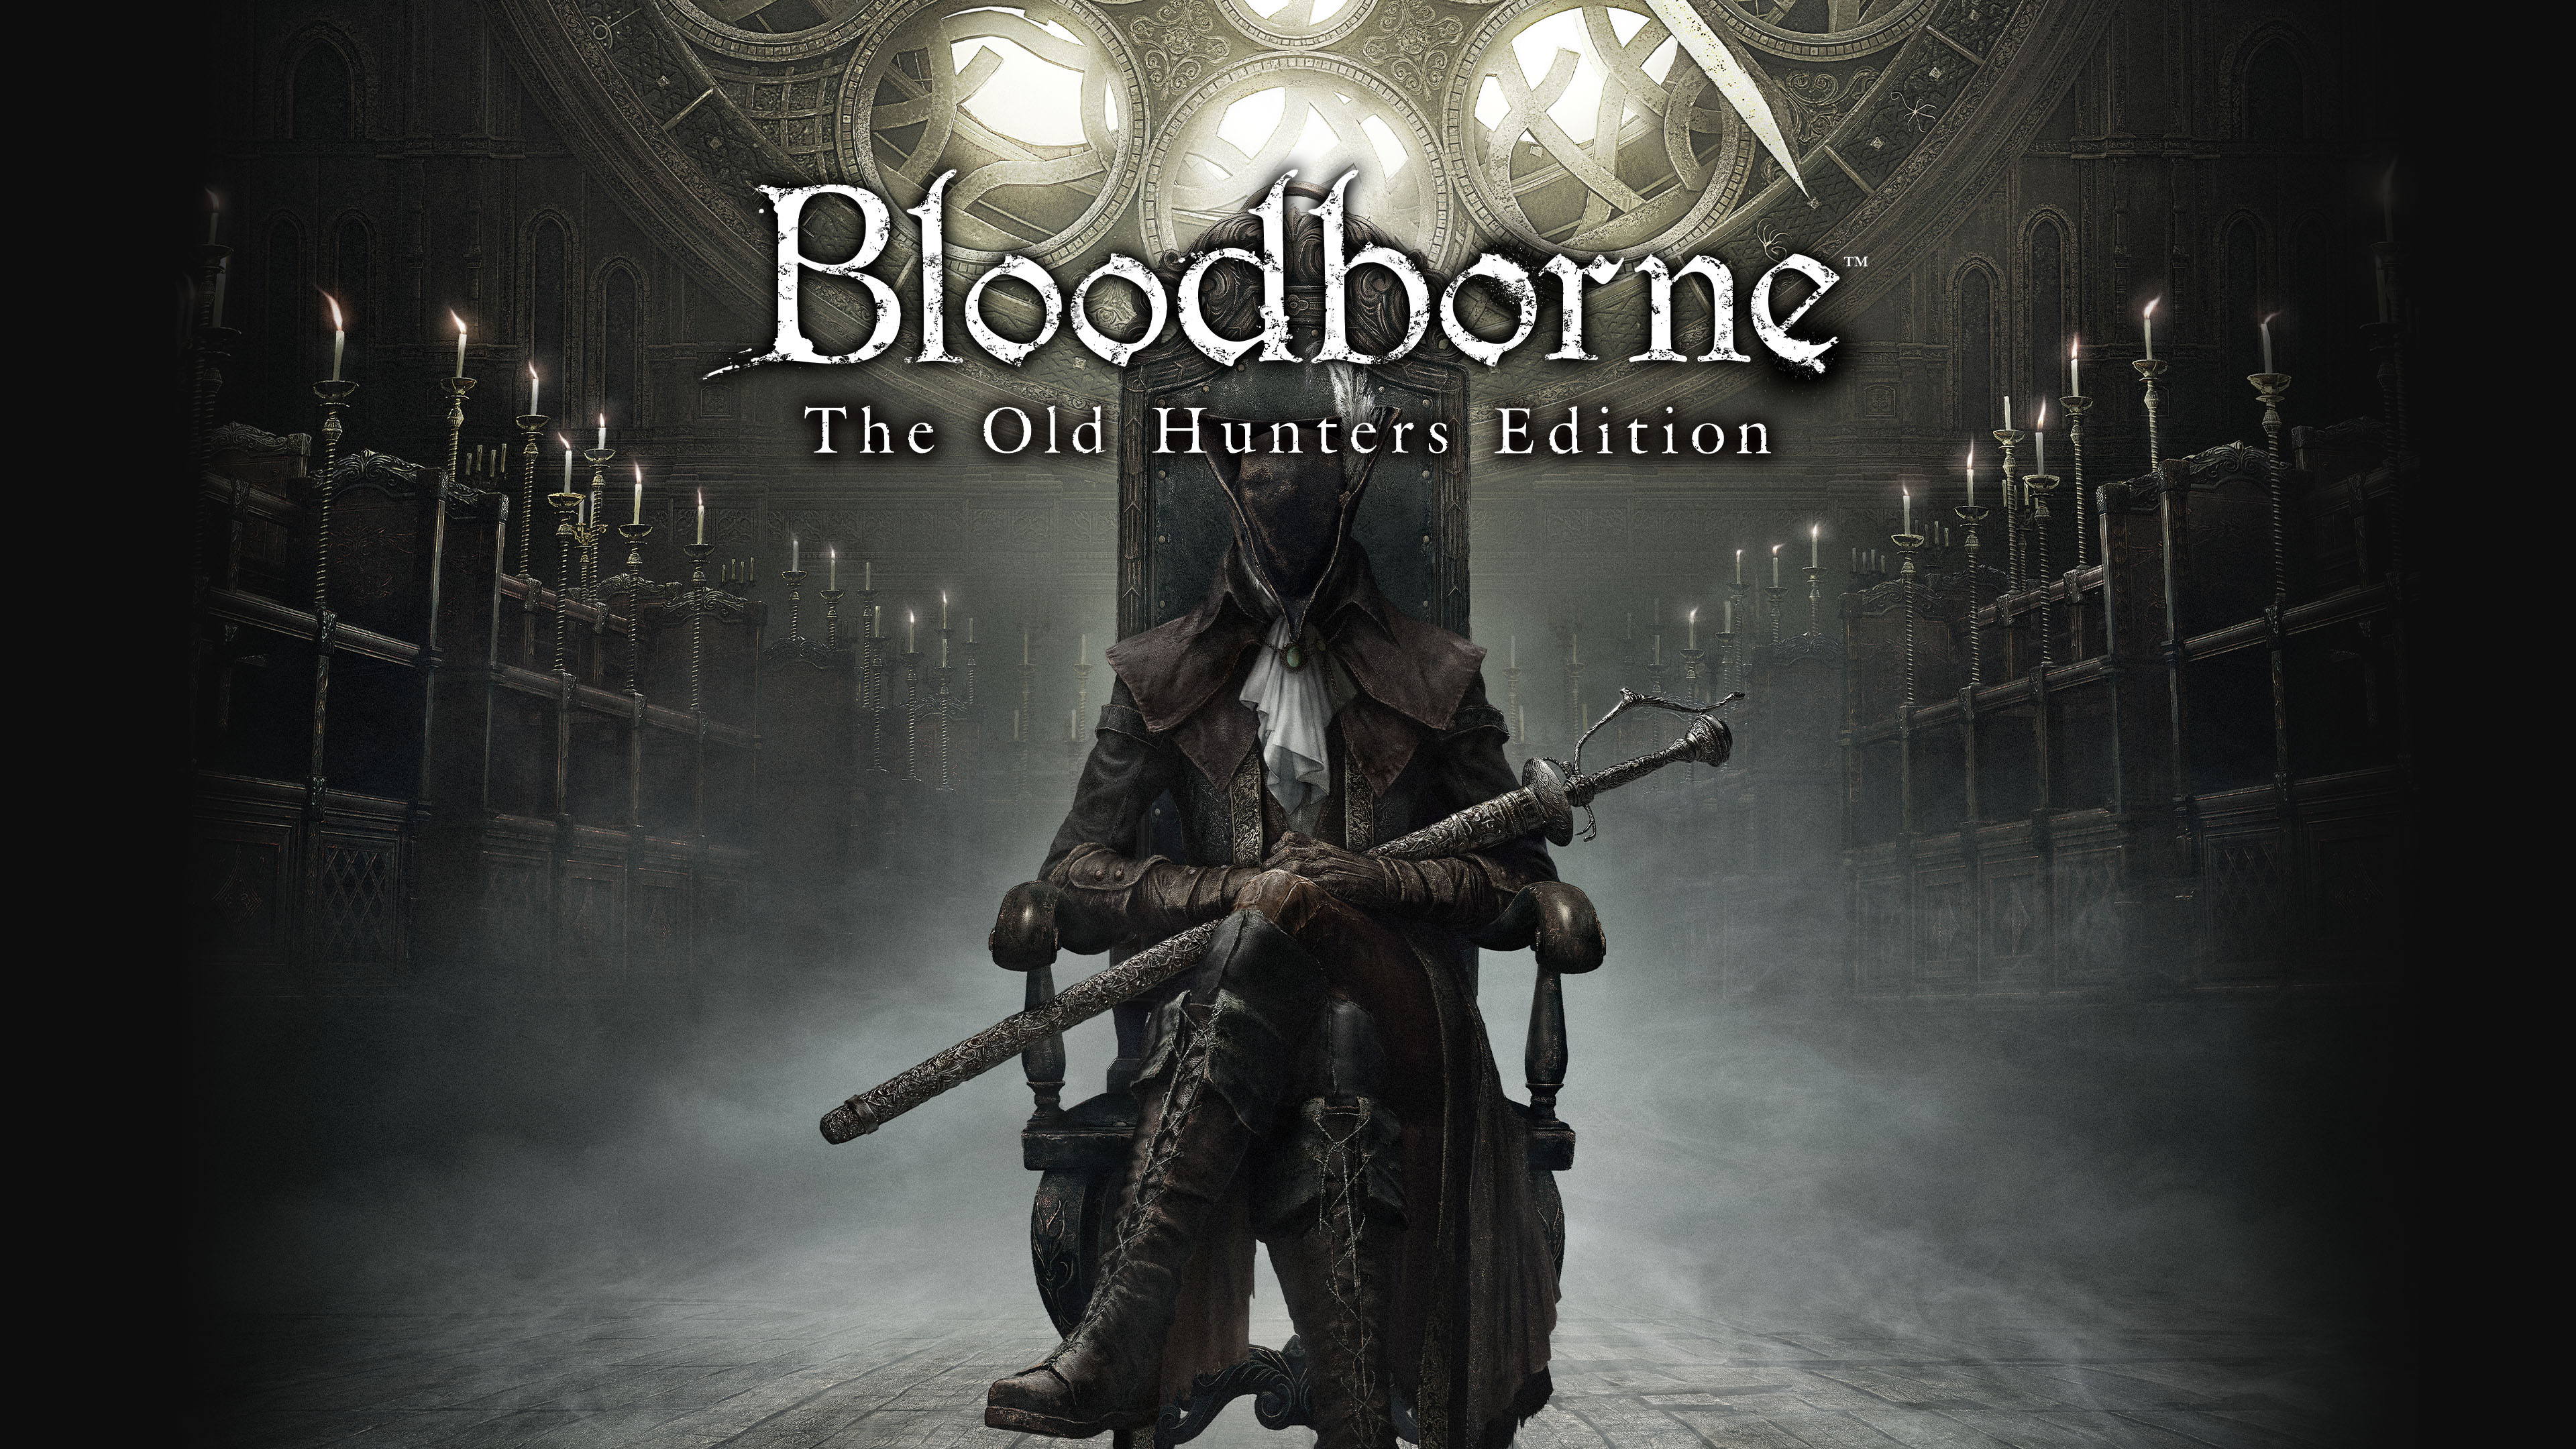 Bloodborne™ The Old Hunters Edition (English/Chinese/Korean Ver.)